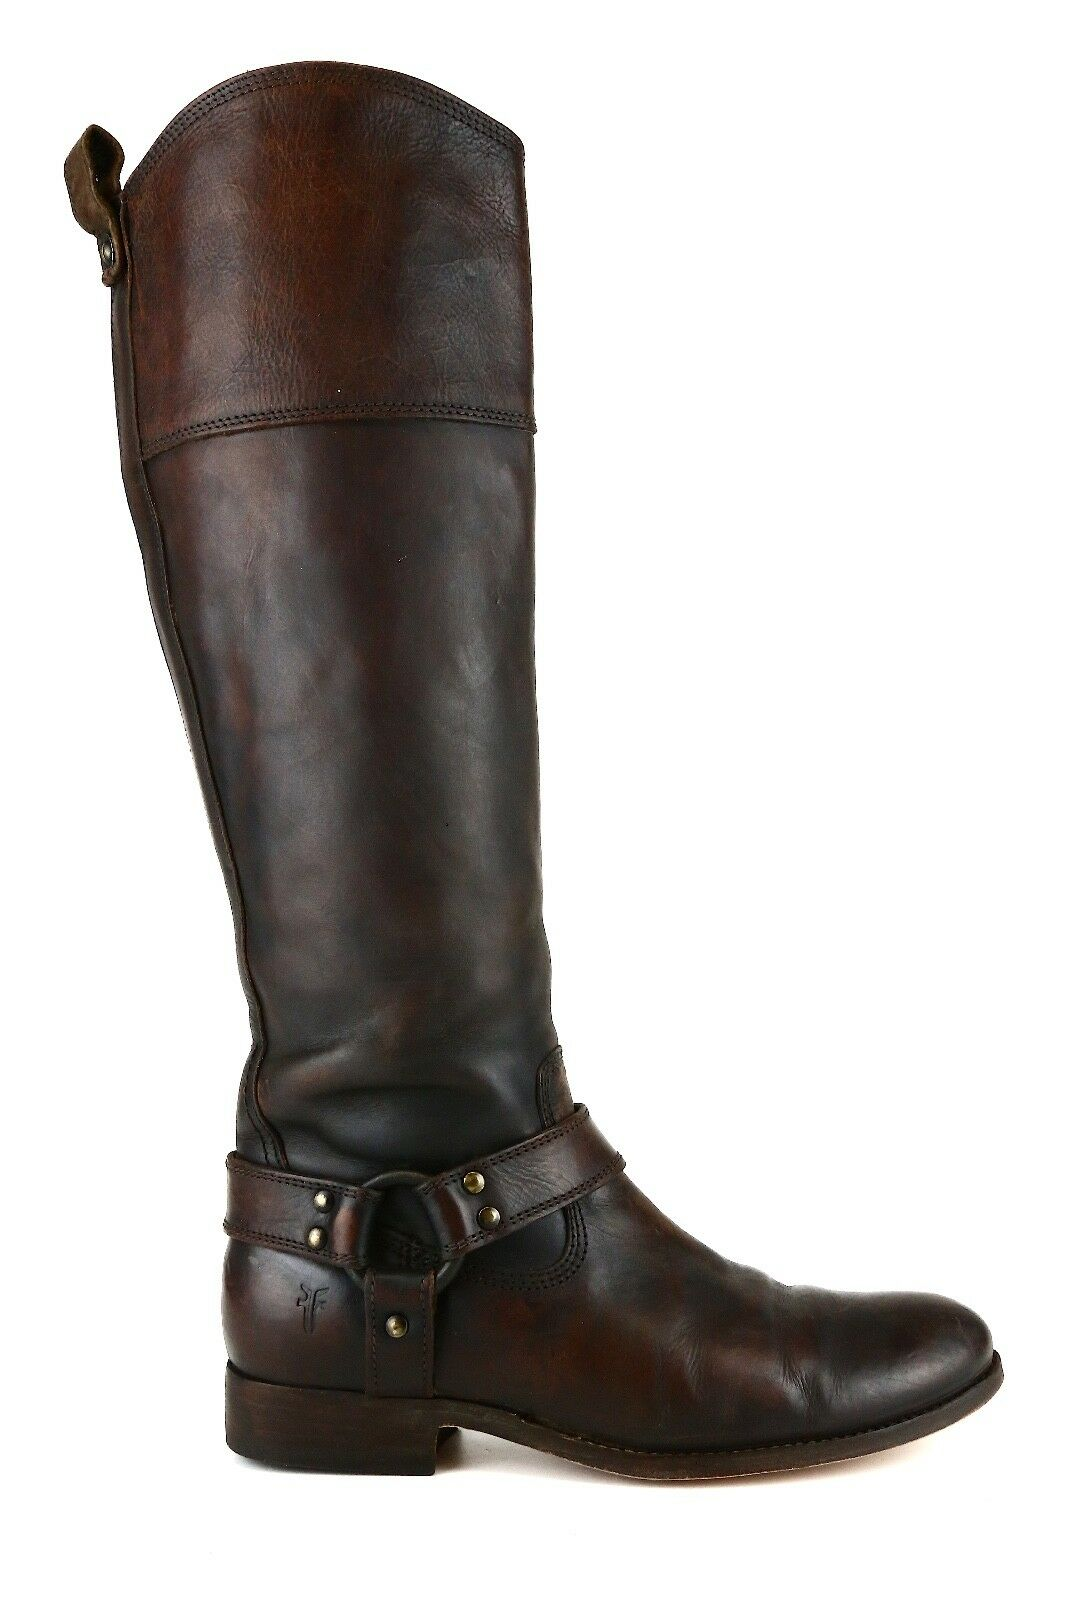 Frye Melissa Harness Leather Boot Boot Boot Brown Women Sz 7 B 5632  c765f2